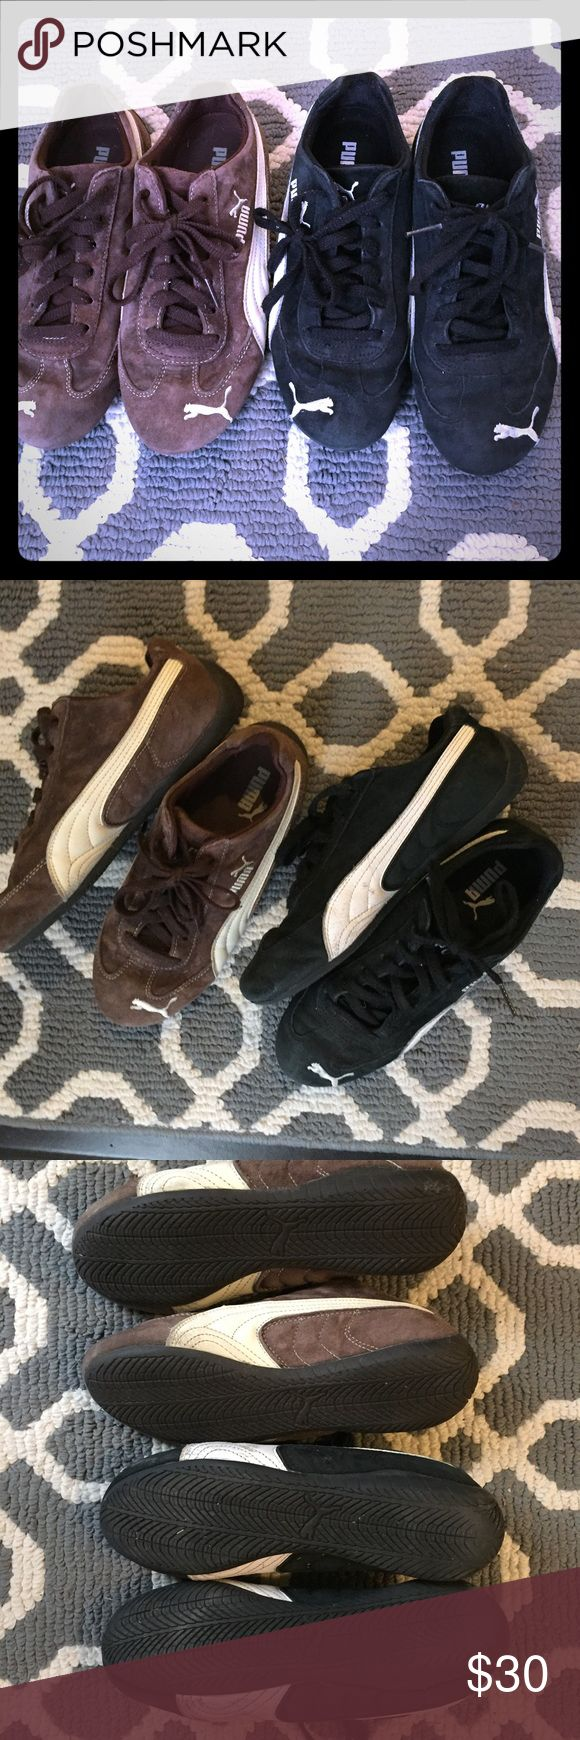 BOGO Pumas! Get 'em 👟👟 Listing is for both pairs! 1 black and 1 brown pair of Puma suede Speedcats. Barely worn. Great condition! Puma Shoes Athletic Shoes